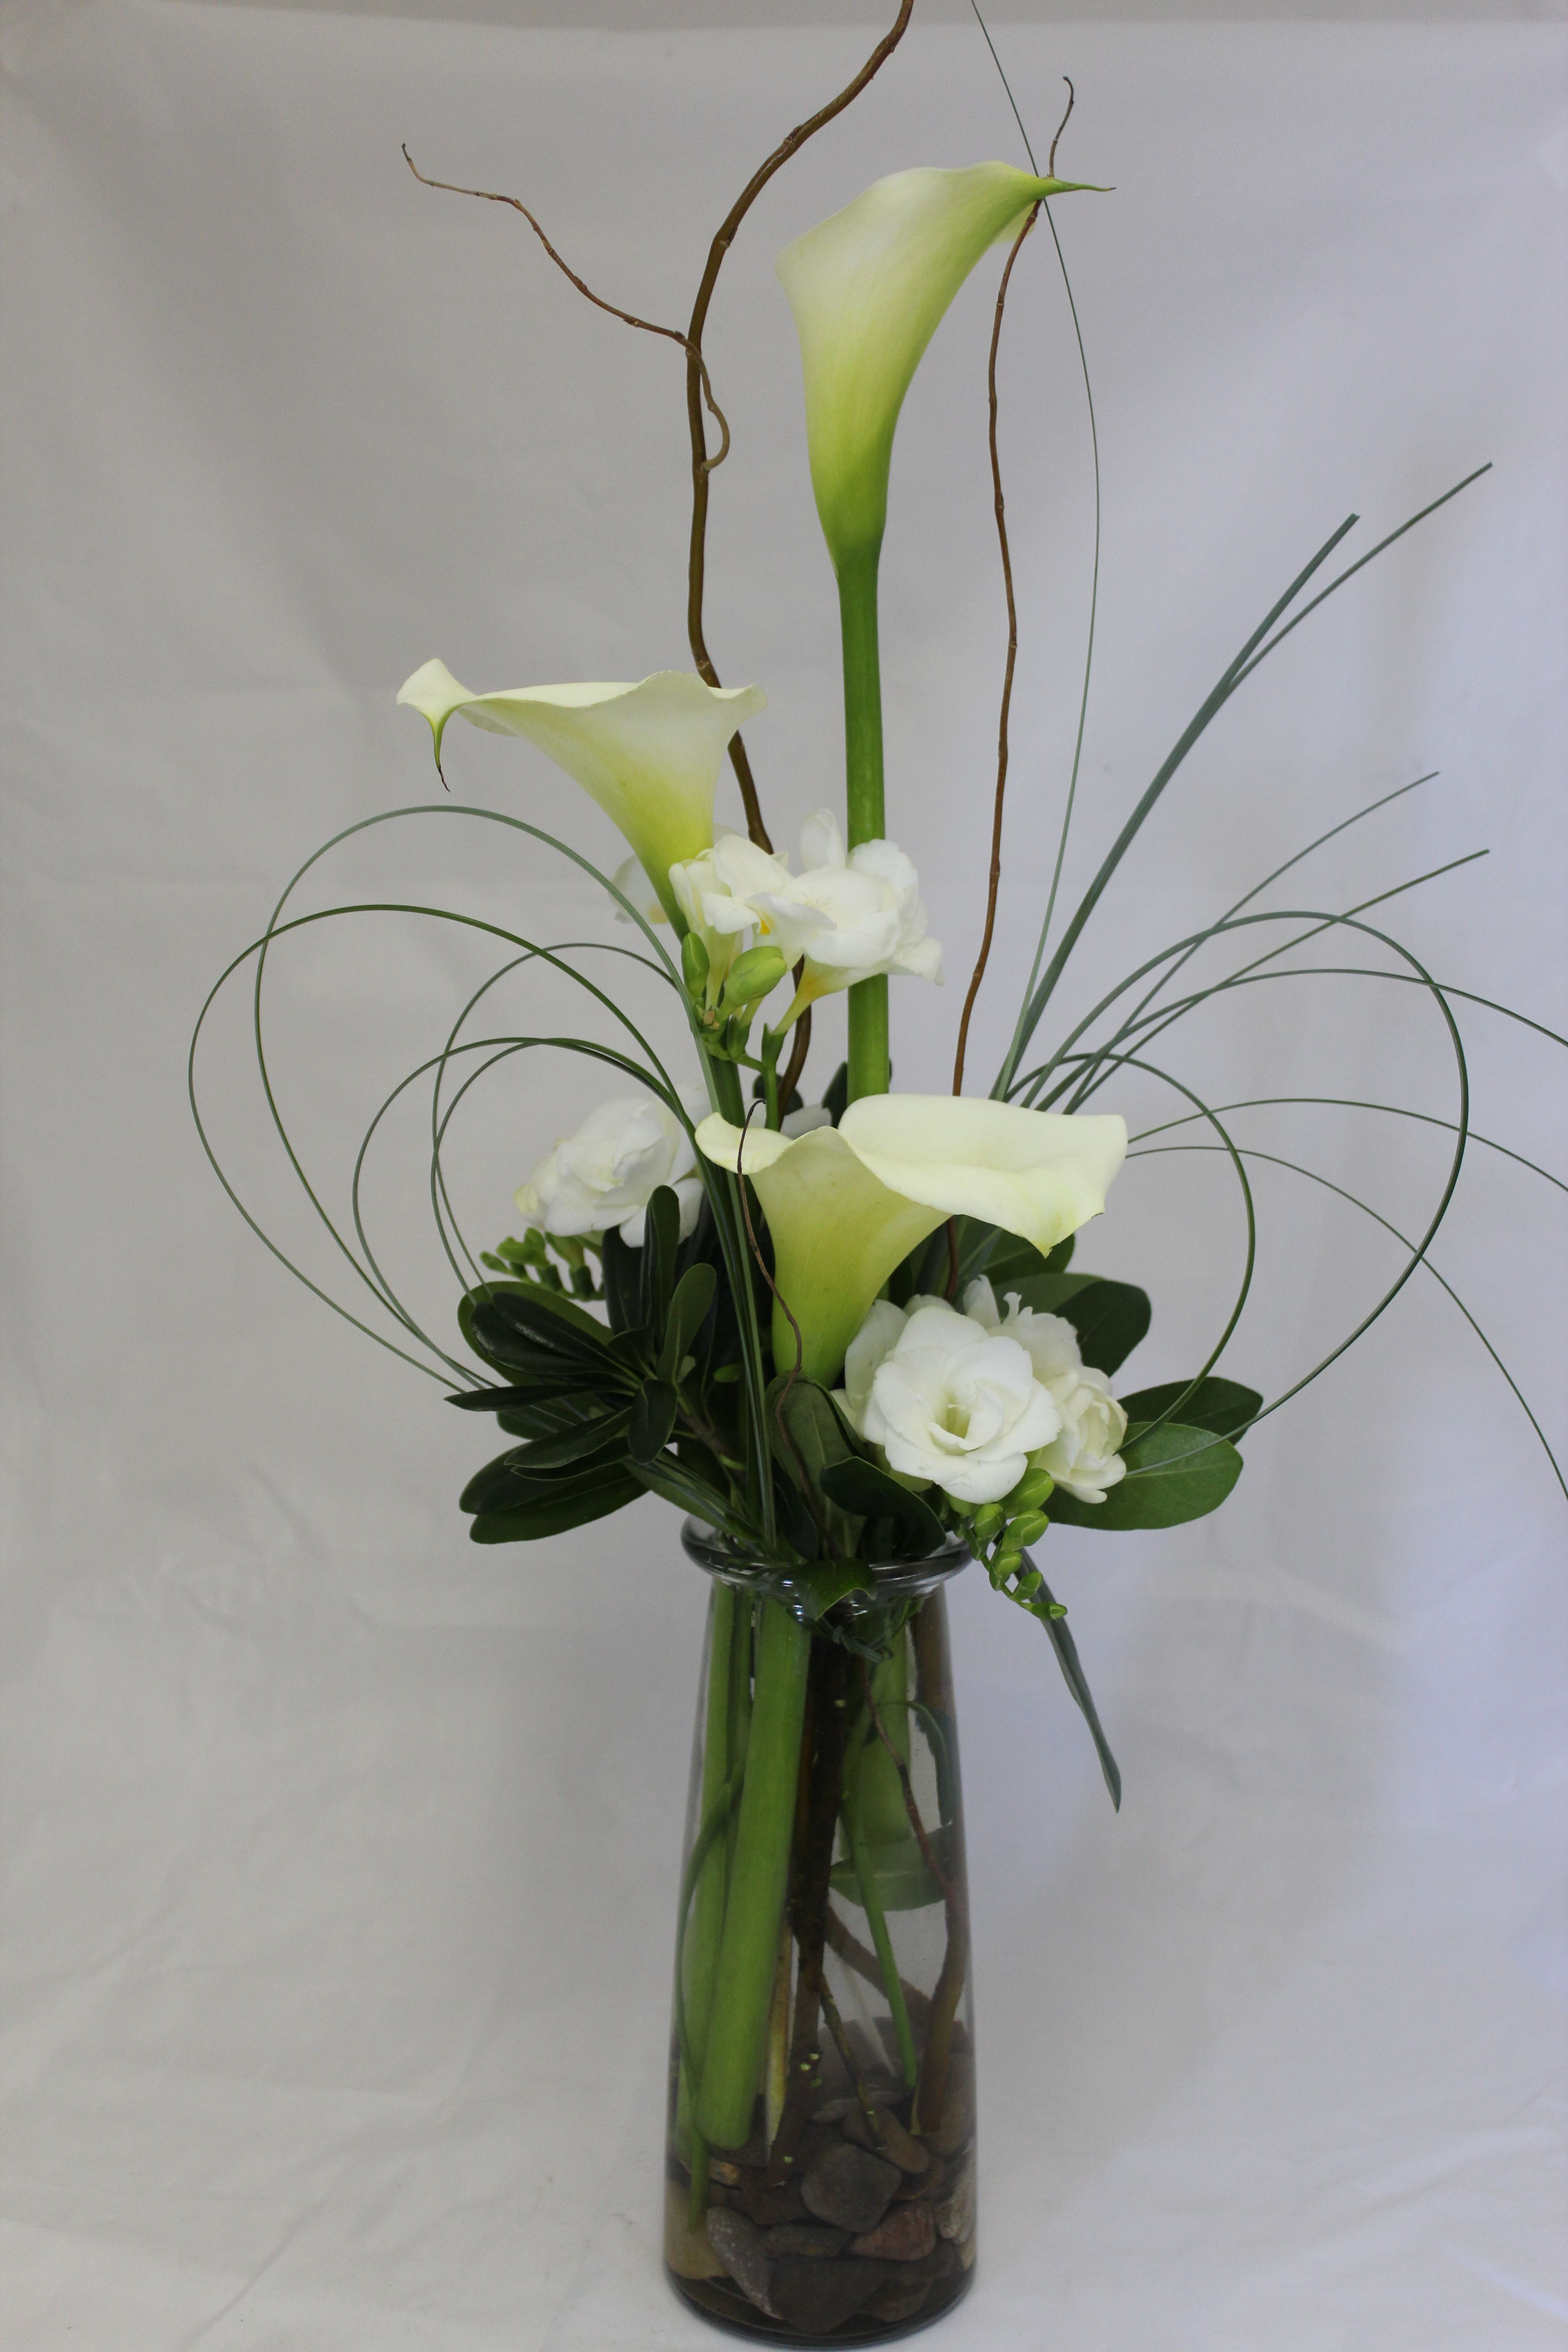 Calla Lilies And Freesia Callalilly Freesia Flowers Design Arte Floral Arreglos Florales Floral